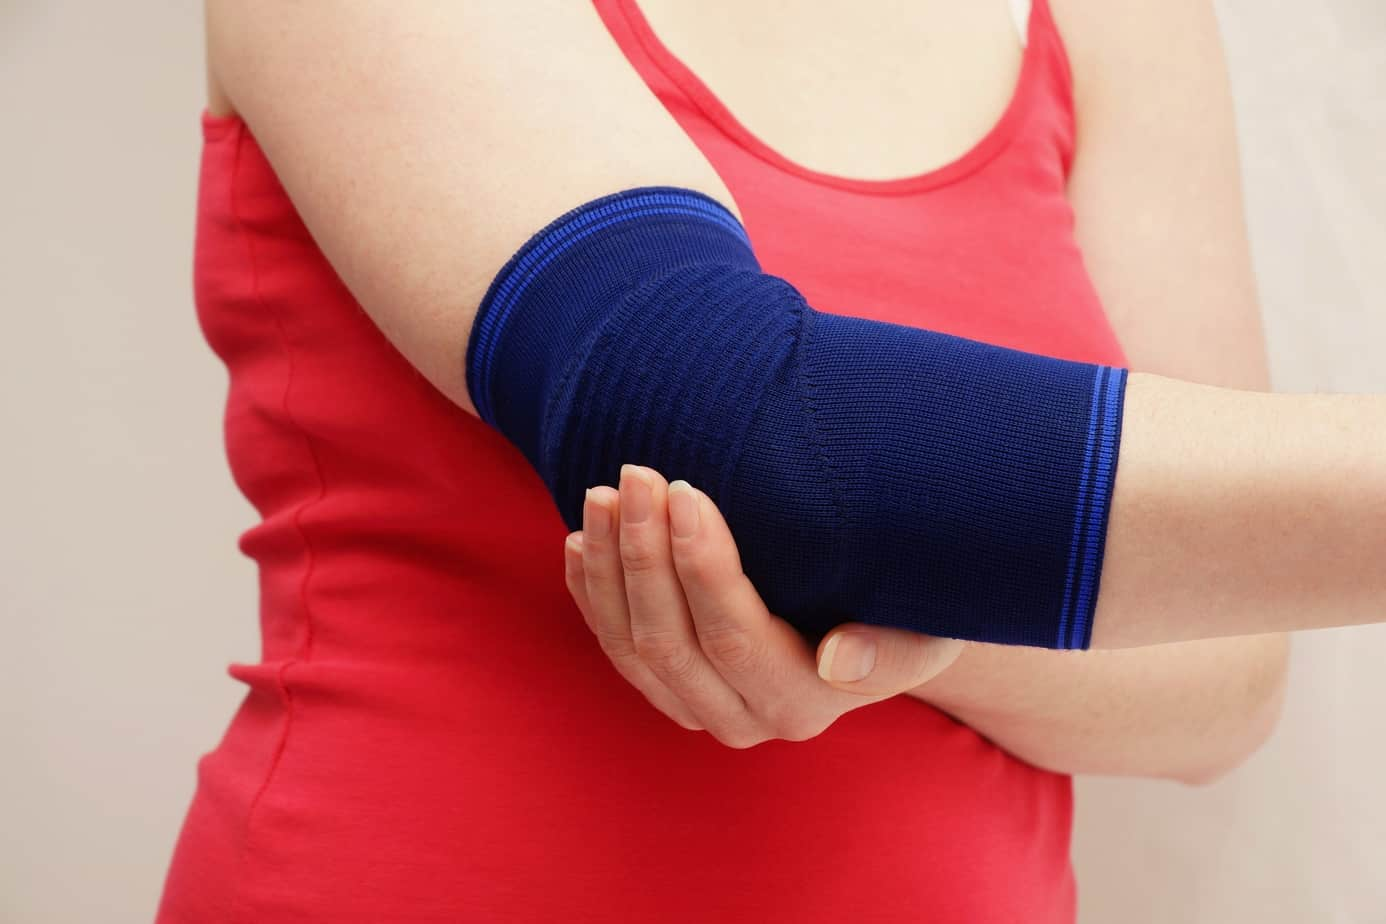 woman wearing elbow compression sleeve